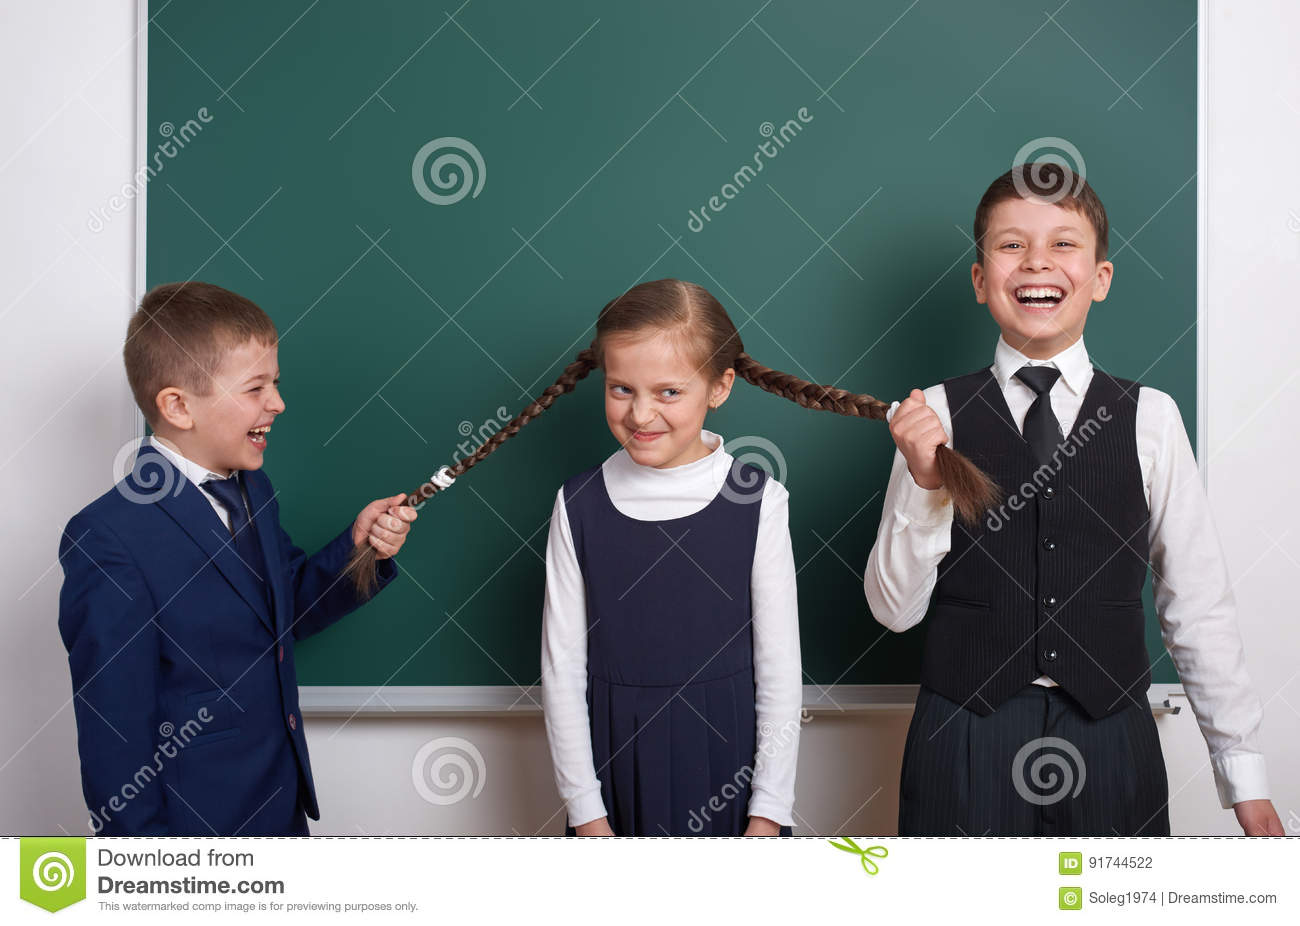 Boys pull the girl braids, elementary school boy near blank chalkboard background, dressed in classic black suit, group pupil, edu